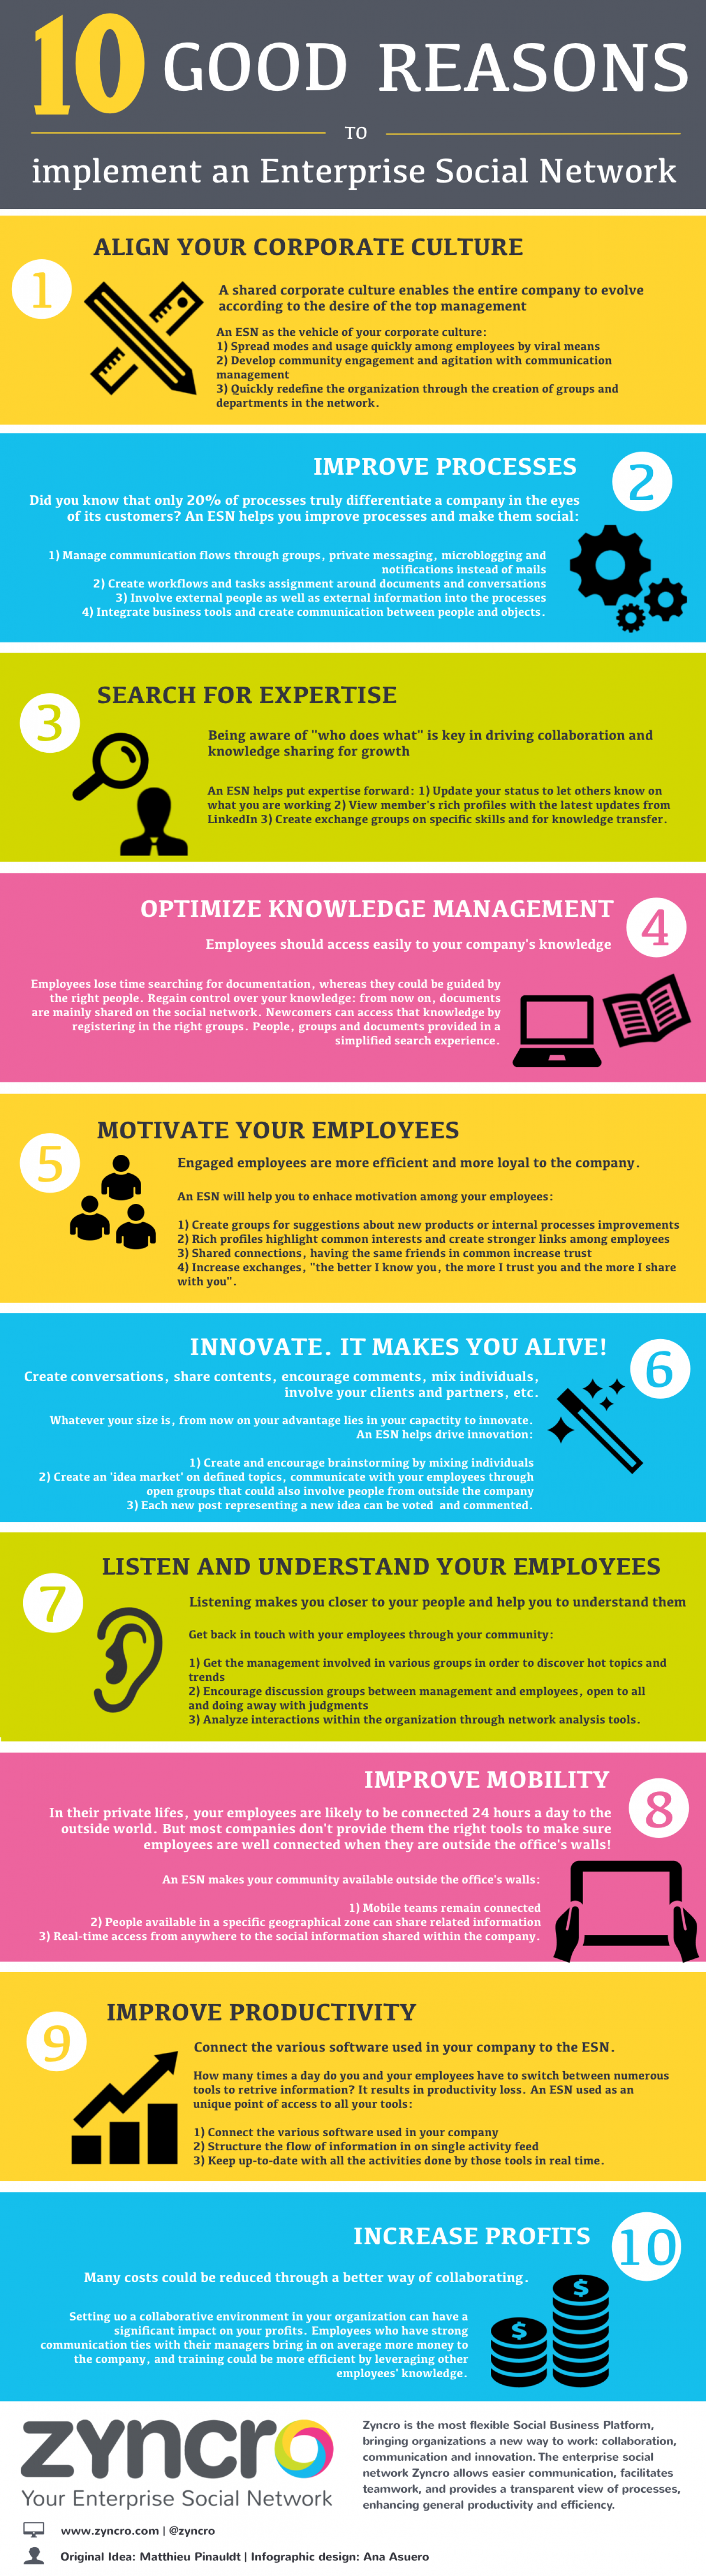 10 good reasons to implement an Enterprise Social Network  Infographic